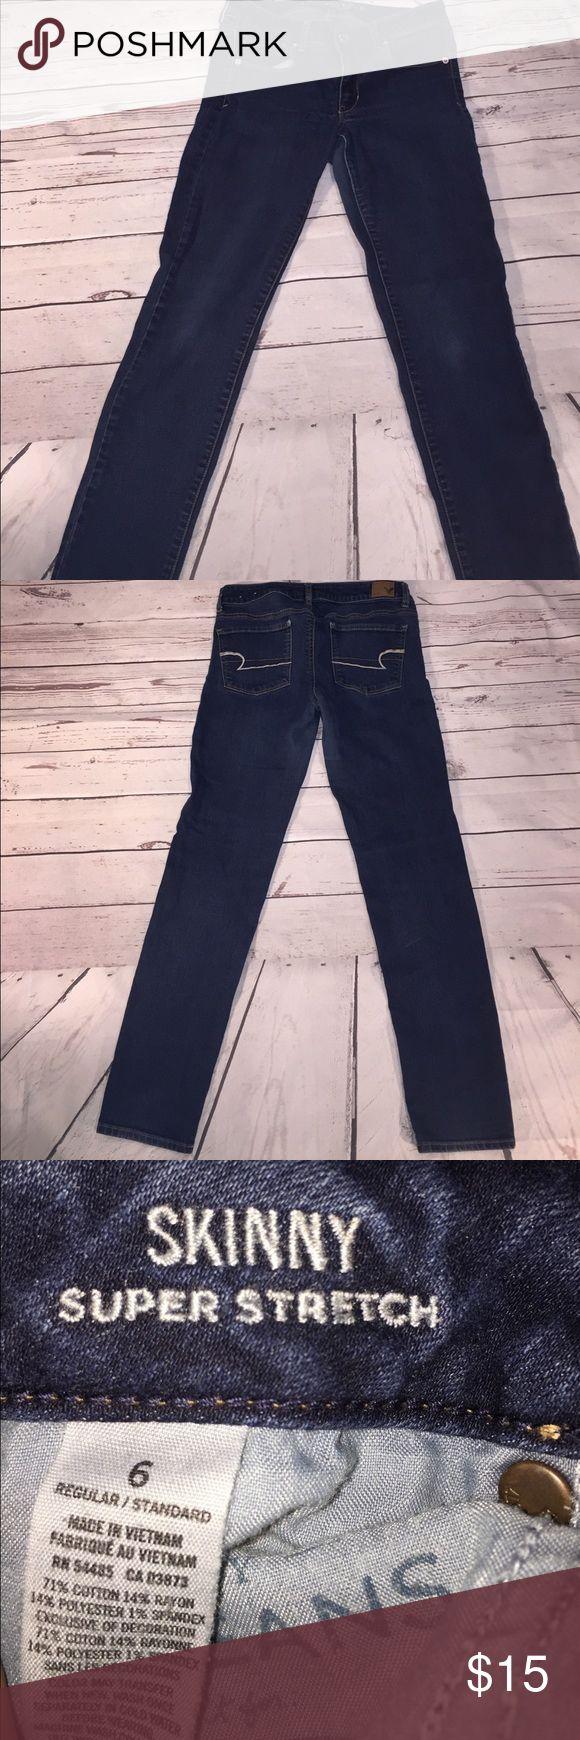 American eagle skinny super stretch jeans size 6 Woman's American eagle super stretch jeans size 6, waist 15, rise 8, inseam 29.5 American Eagle Outfitters Pants Skinny